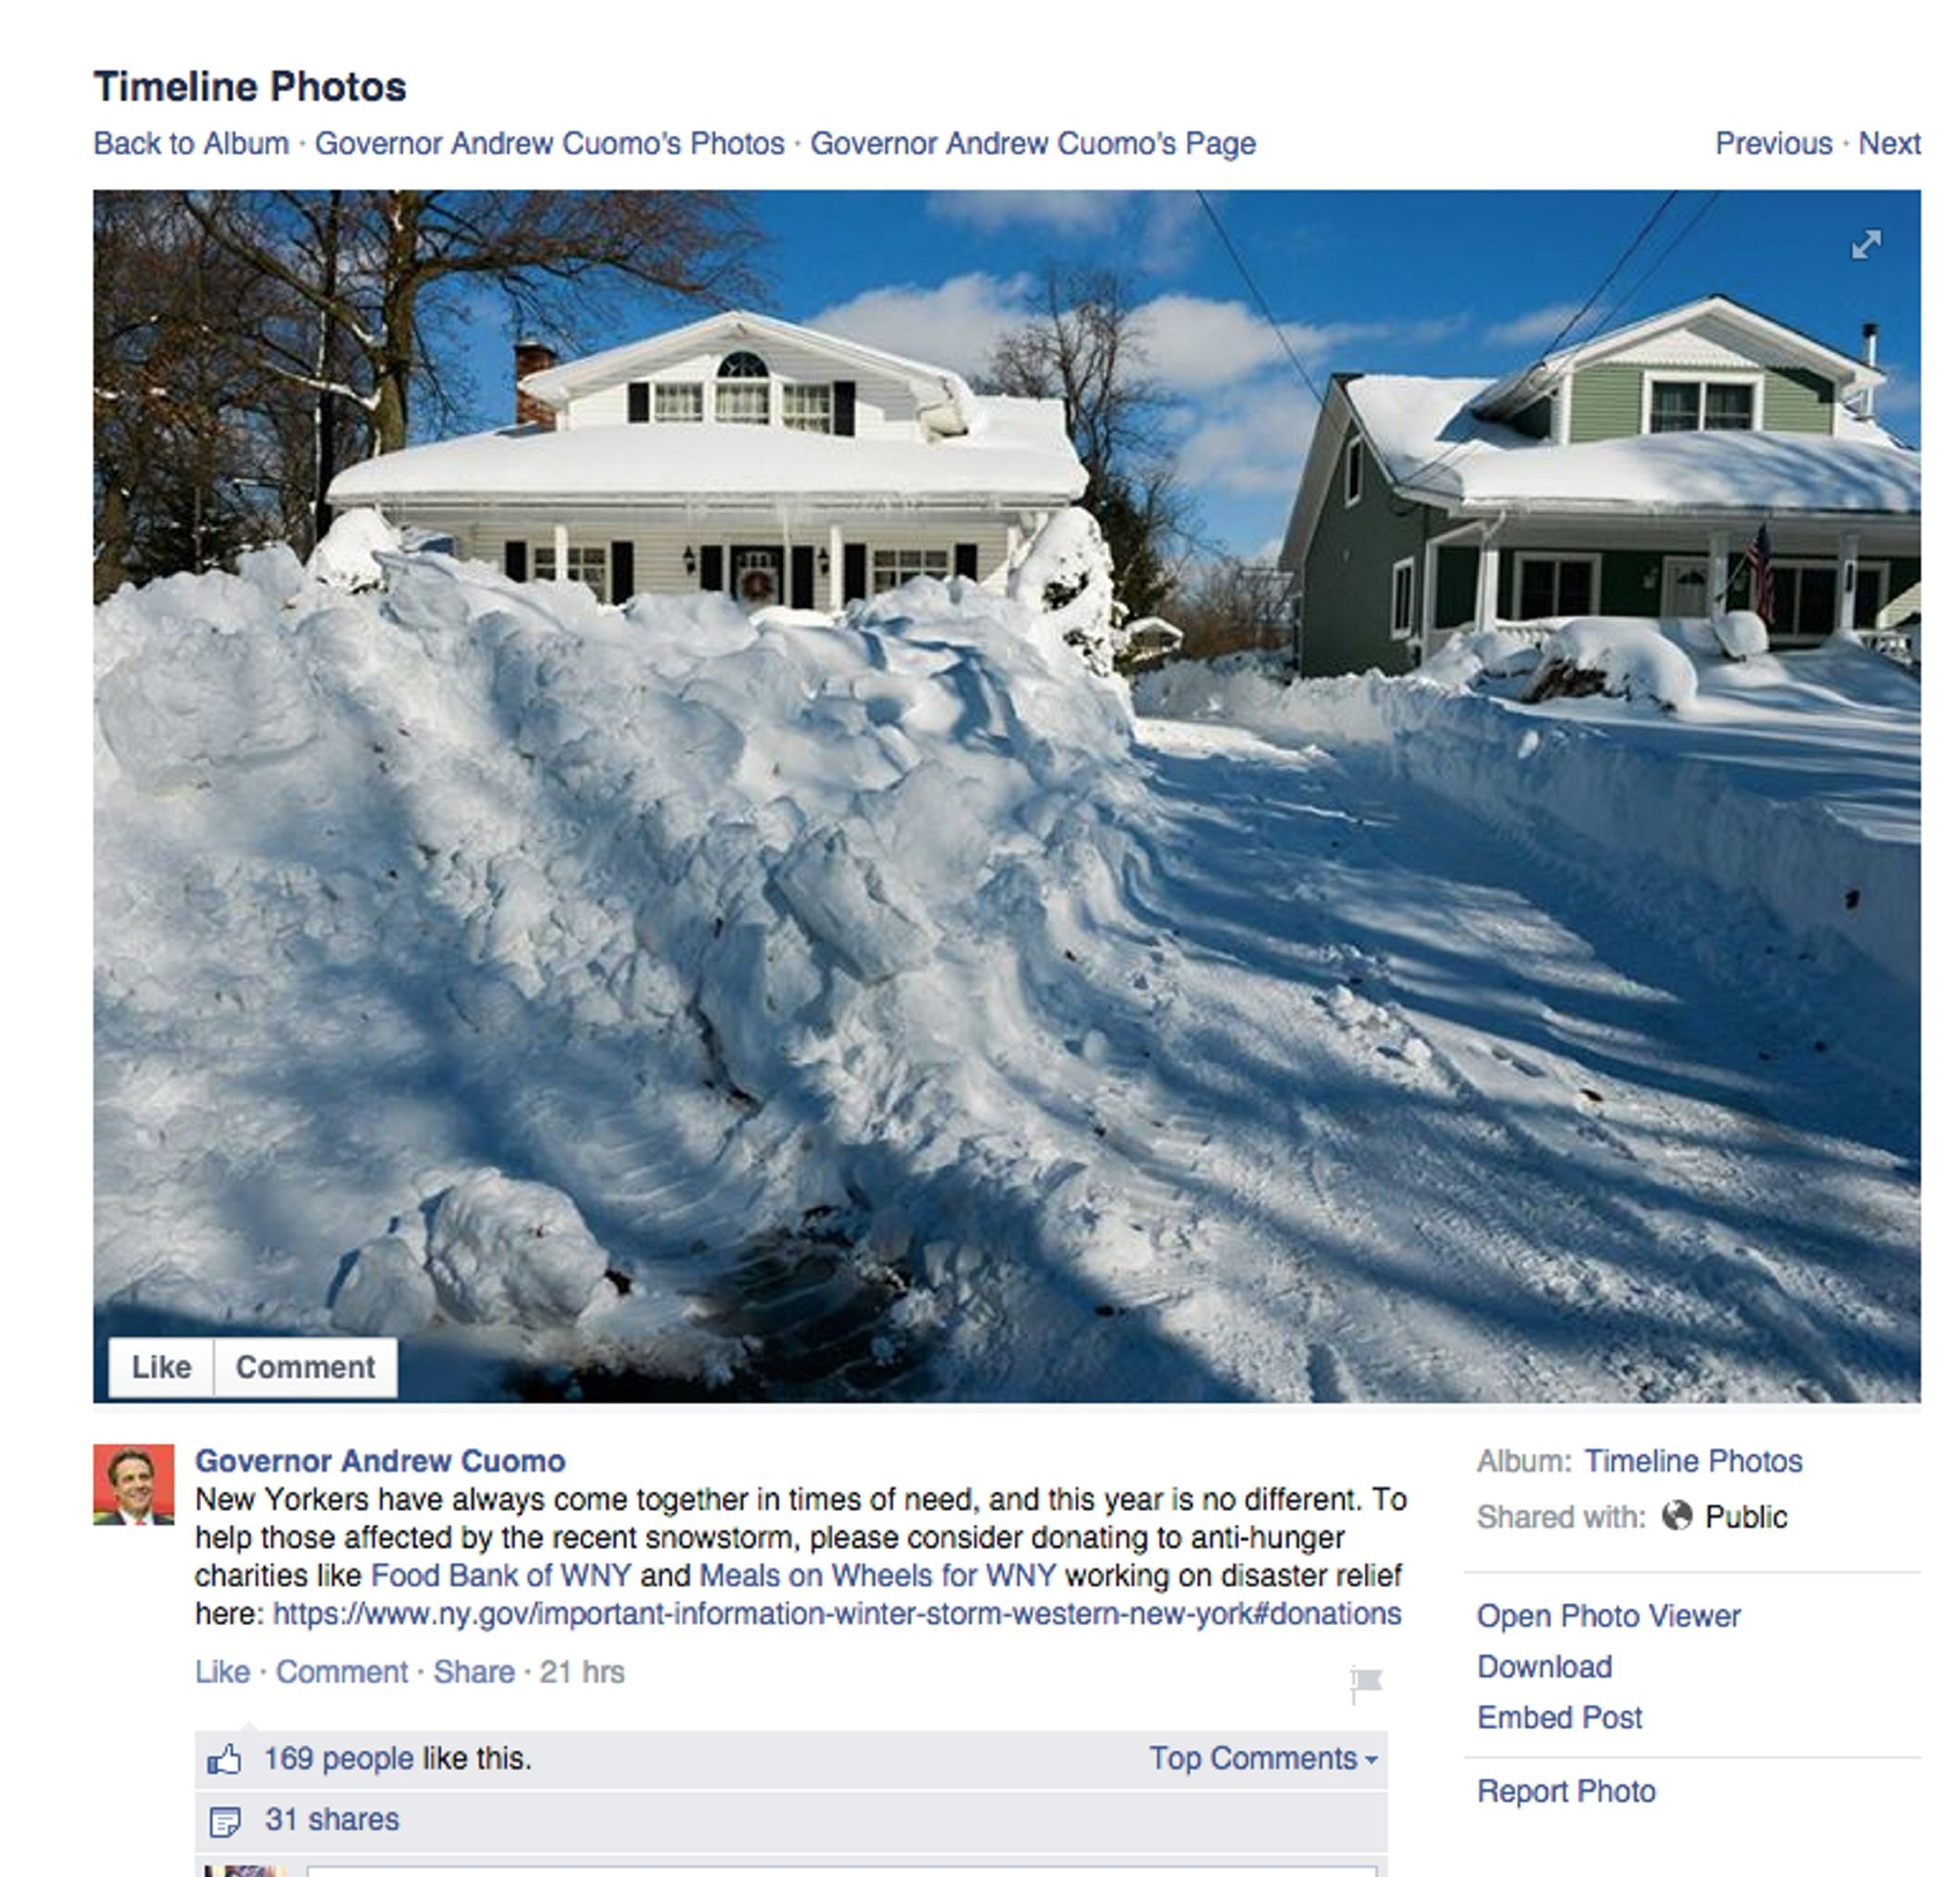 With a Facebook post that featured this photo, Gov. Andrew Cuomo urged New Yorkers to donate to anti- hunger charities helping in the snowstorm recovery. The South Buffalo house at the left is Carl Paladino's.